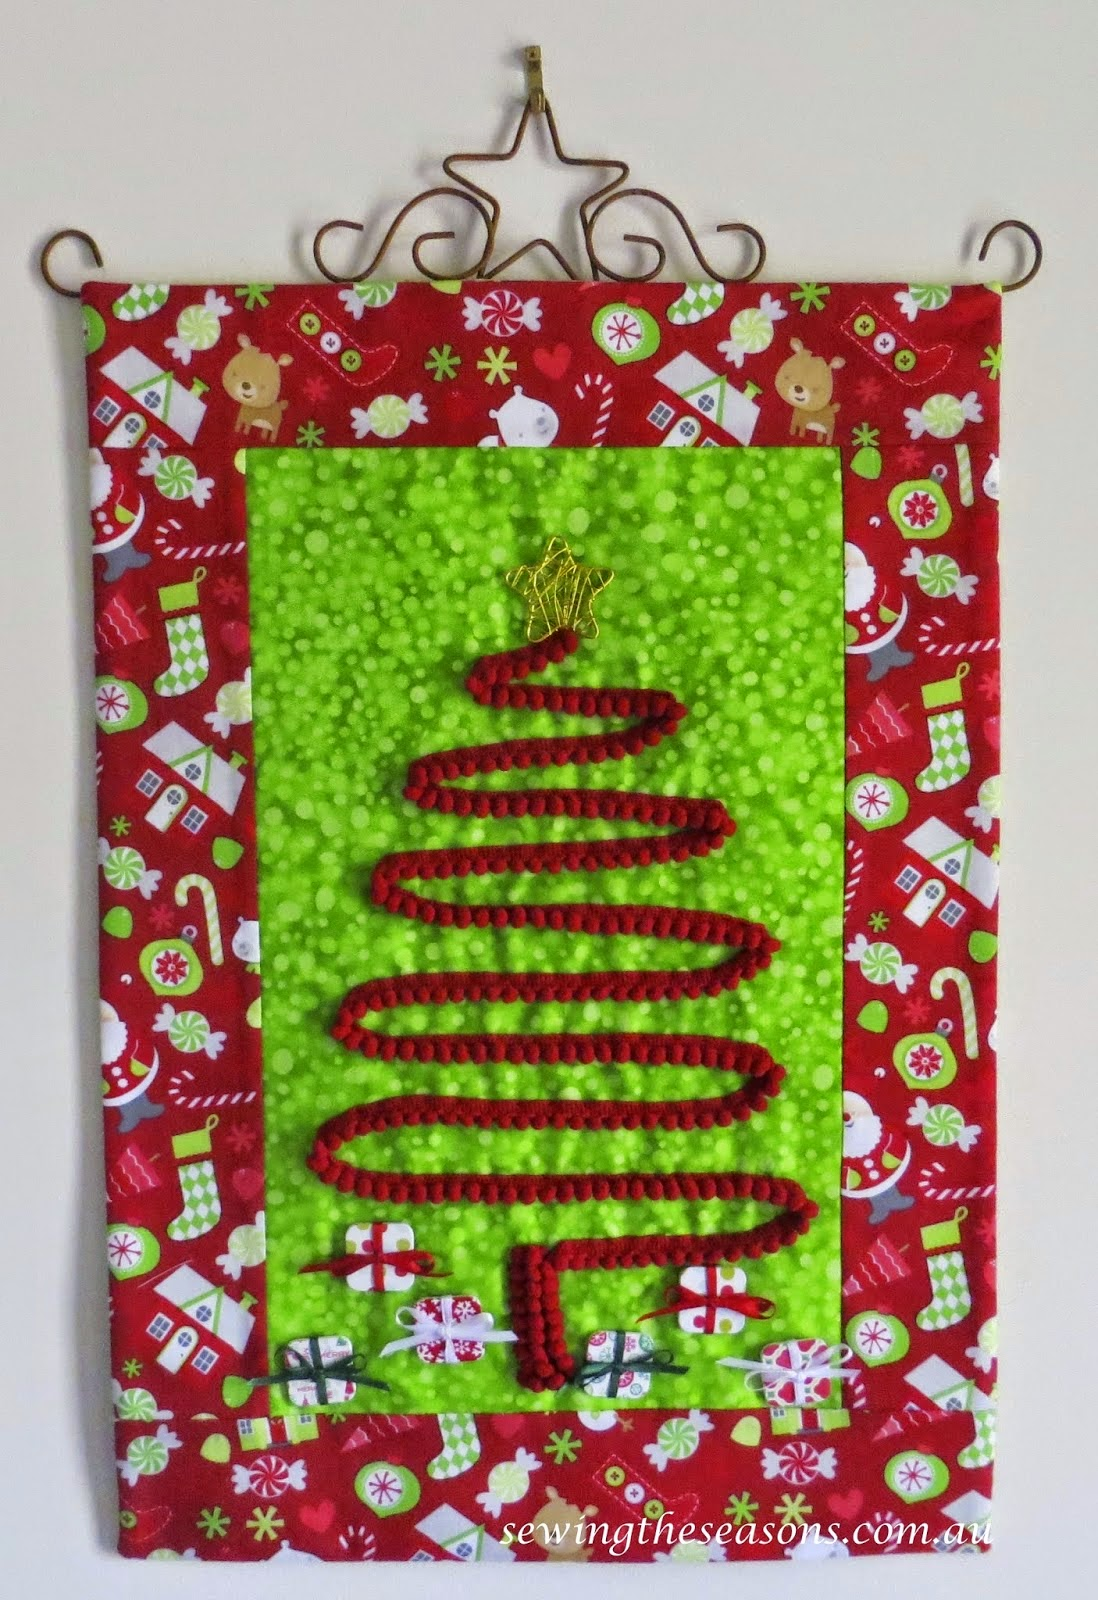 http://www.sewingtheseasons.com.au/2014/11/all-wrapped-up-christmas-hanging.html